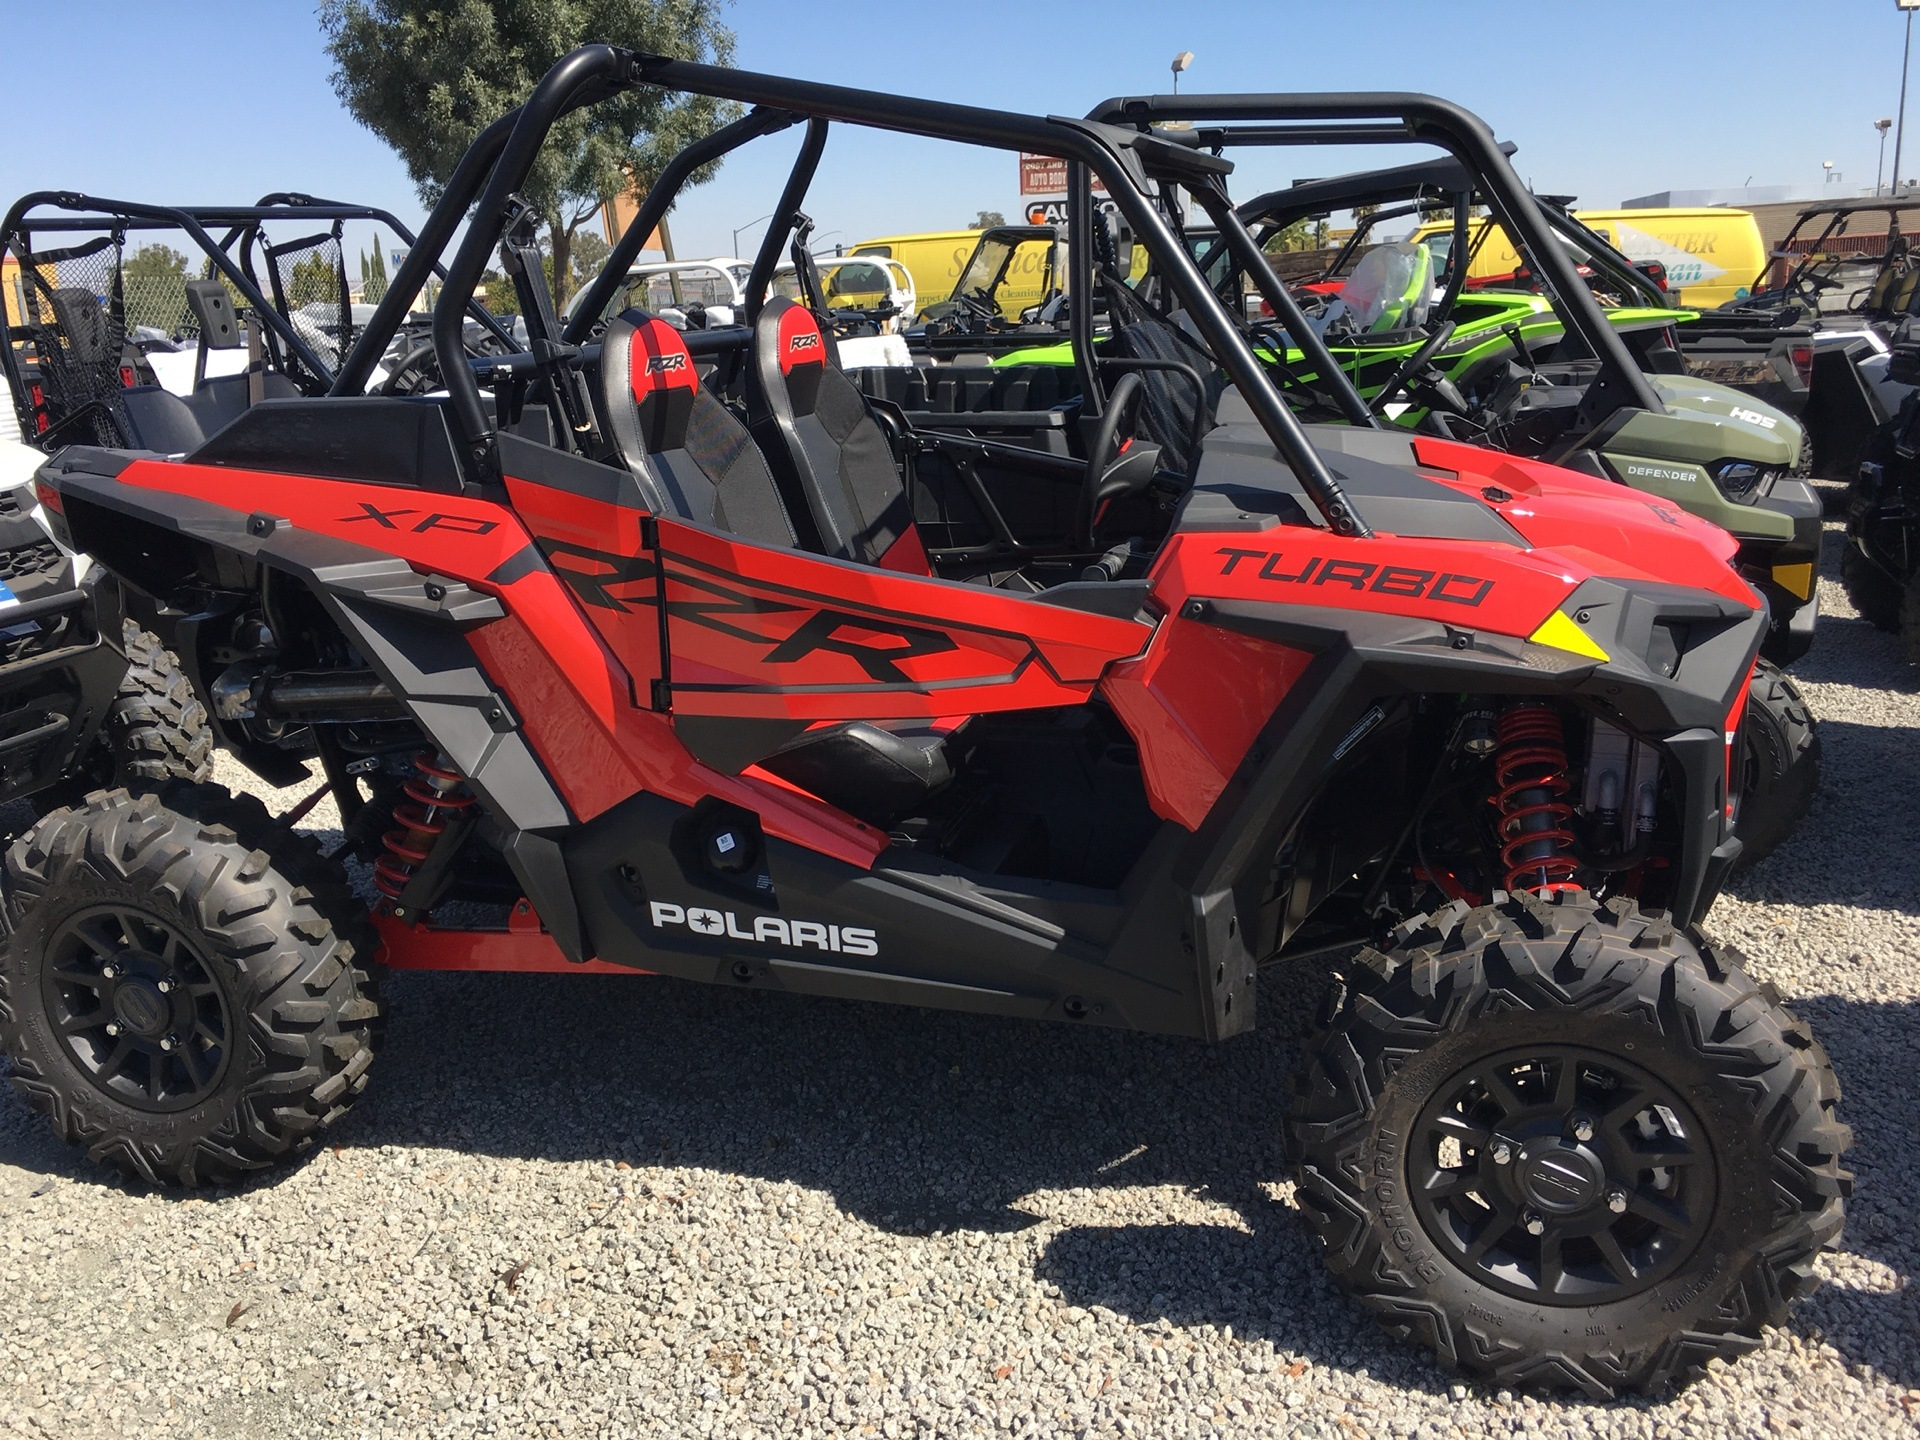 2020 Polaris RZR XP Turbo in Paso Robles, California - Photo 1